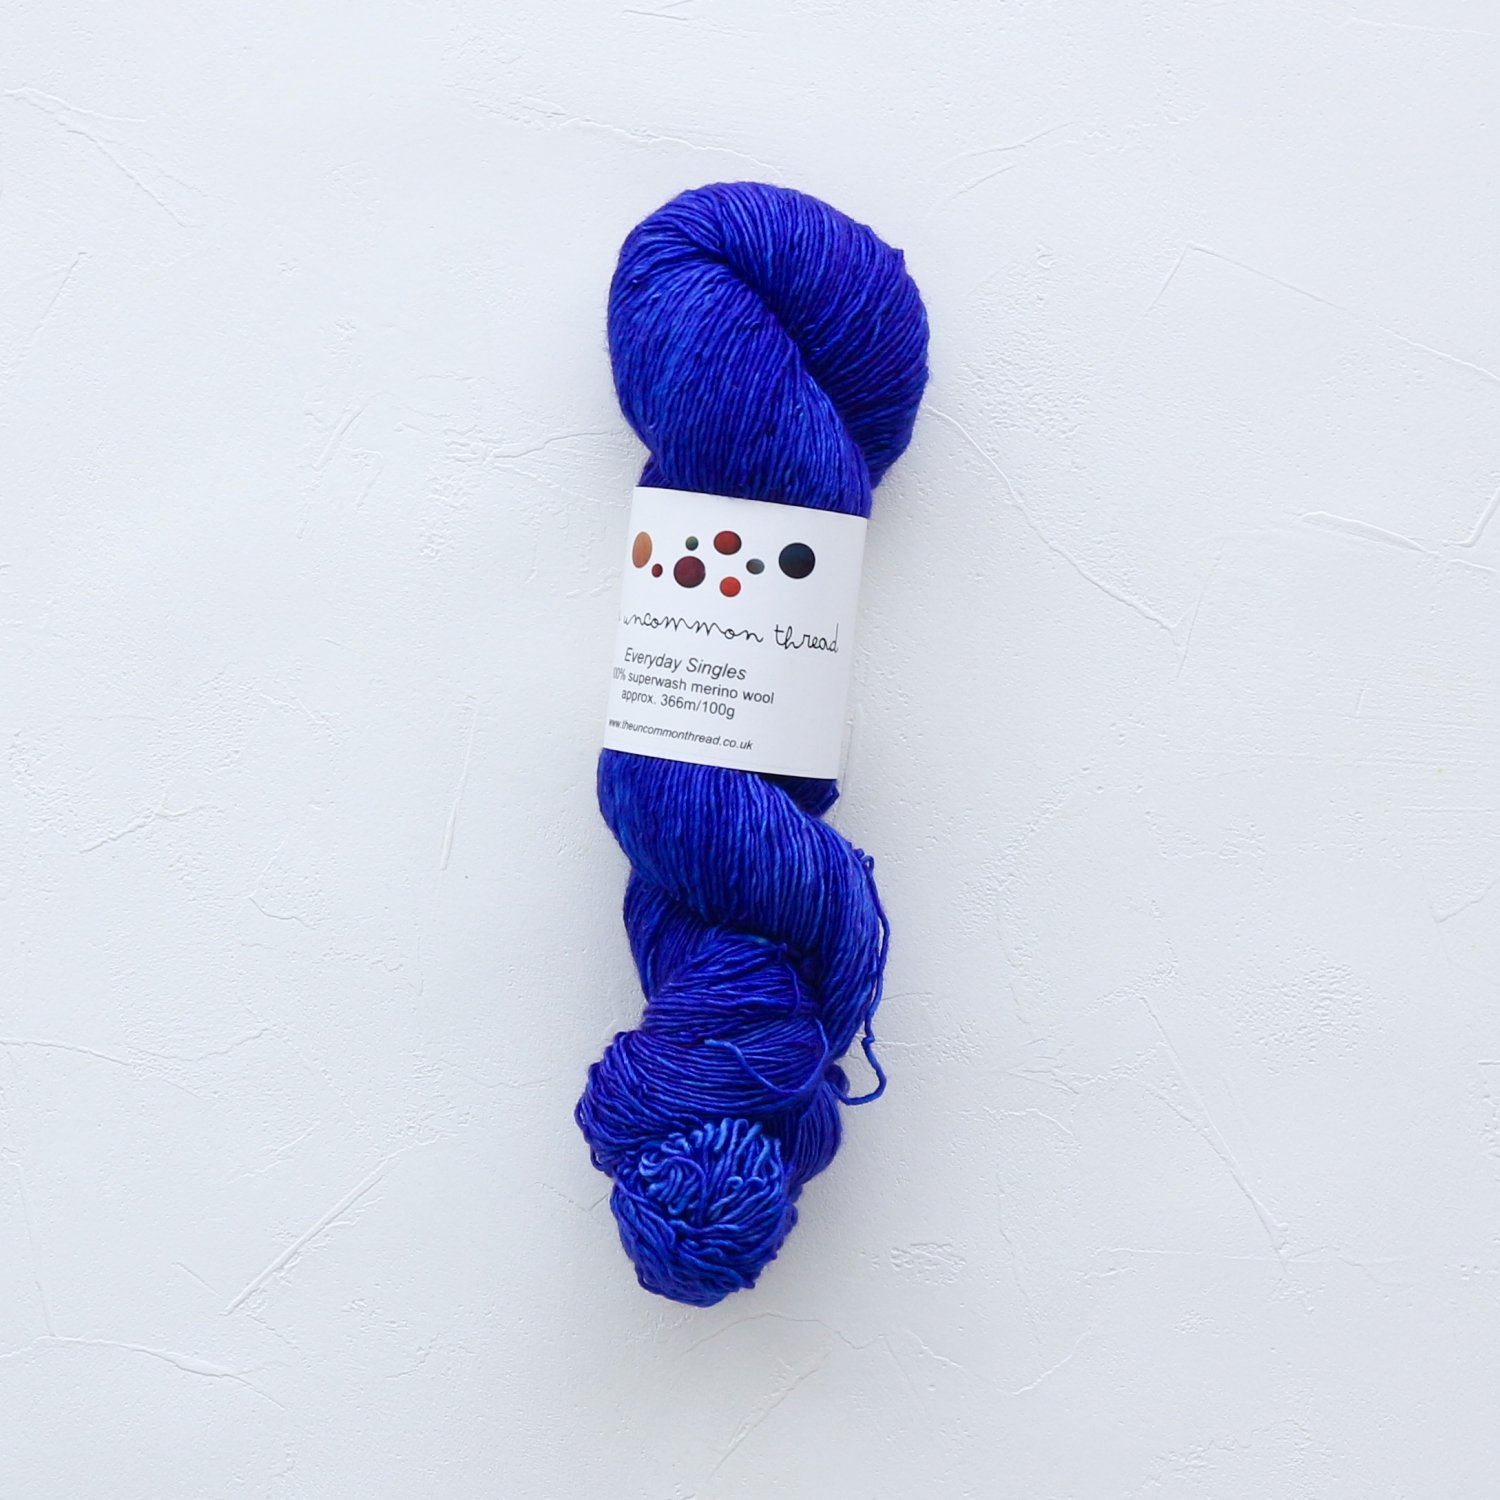 【The Uncommon Thread】<br>Everyday Singles<br>Viola Odorata